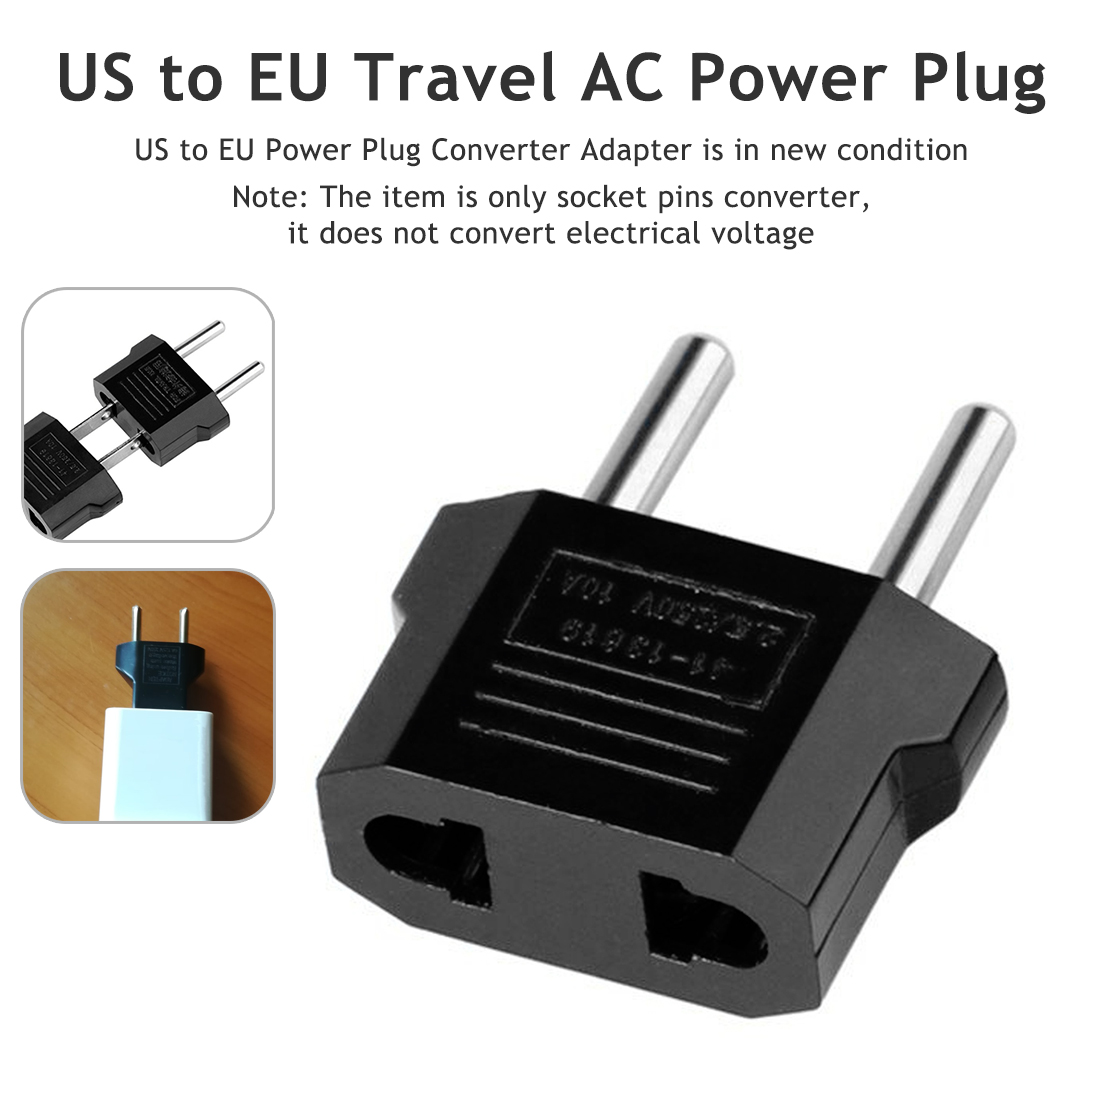 European EU Plug Adapter US American To Europe Euro Travel Power Adapter Plug Outlet Converter Socket  European EU Plug Adapter US American To Europe Euro Travel Power Adapter Plug Outlet Converter Socket